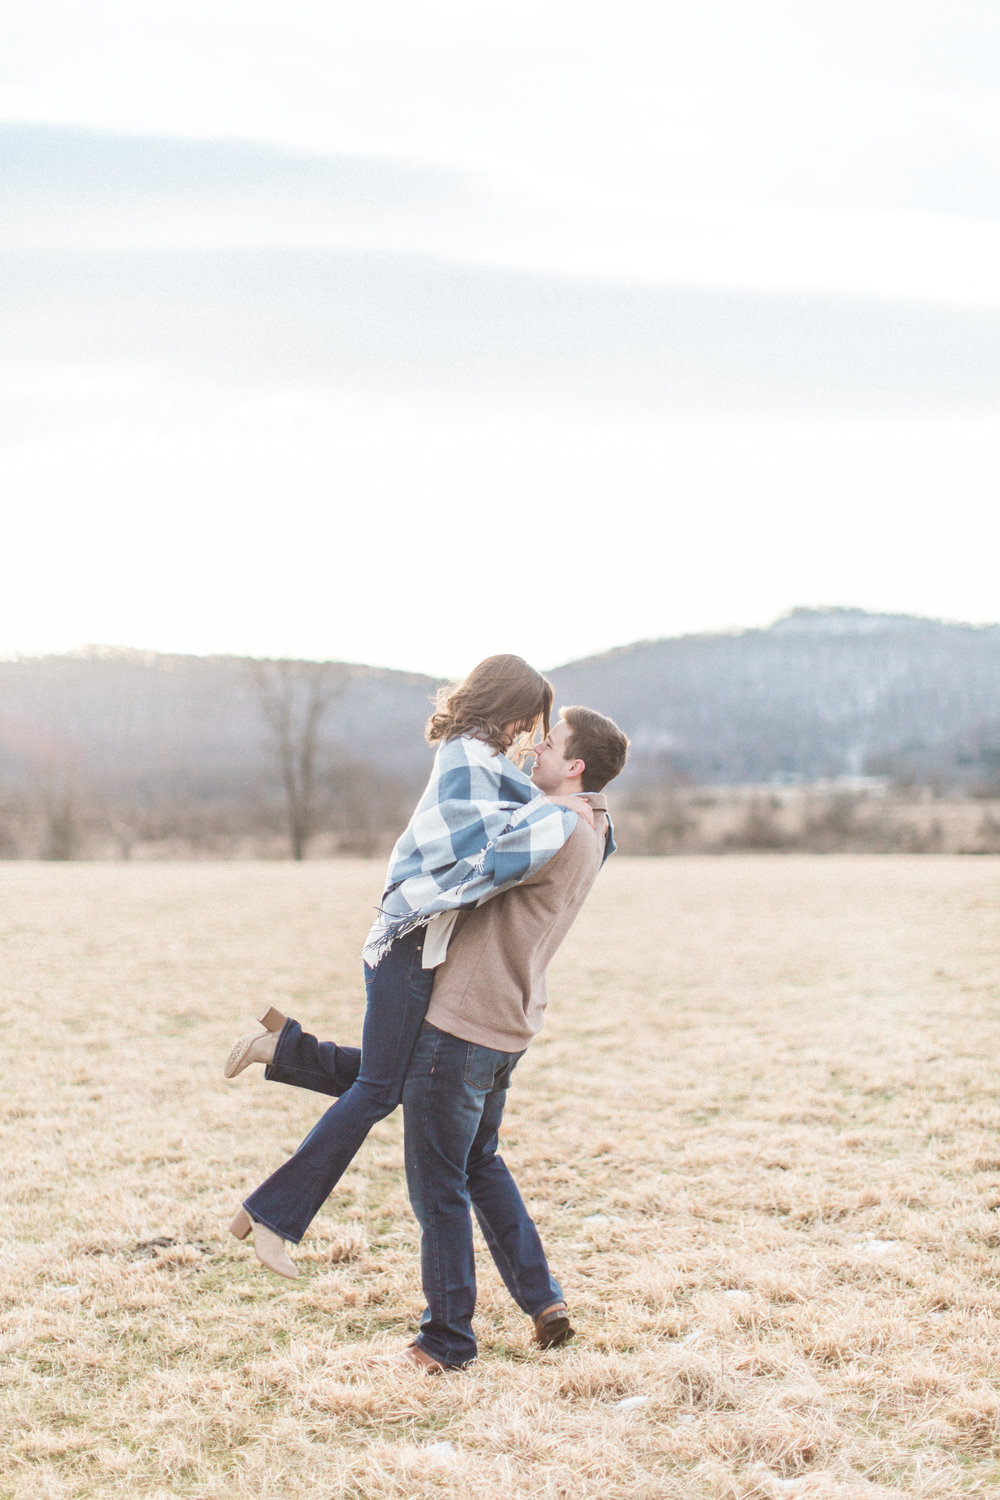 Abigail_Jill_Photography_Maryland_Engagement_Farm_Emily_Justin124.jpg